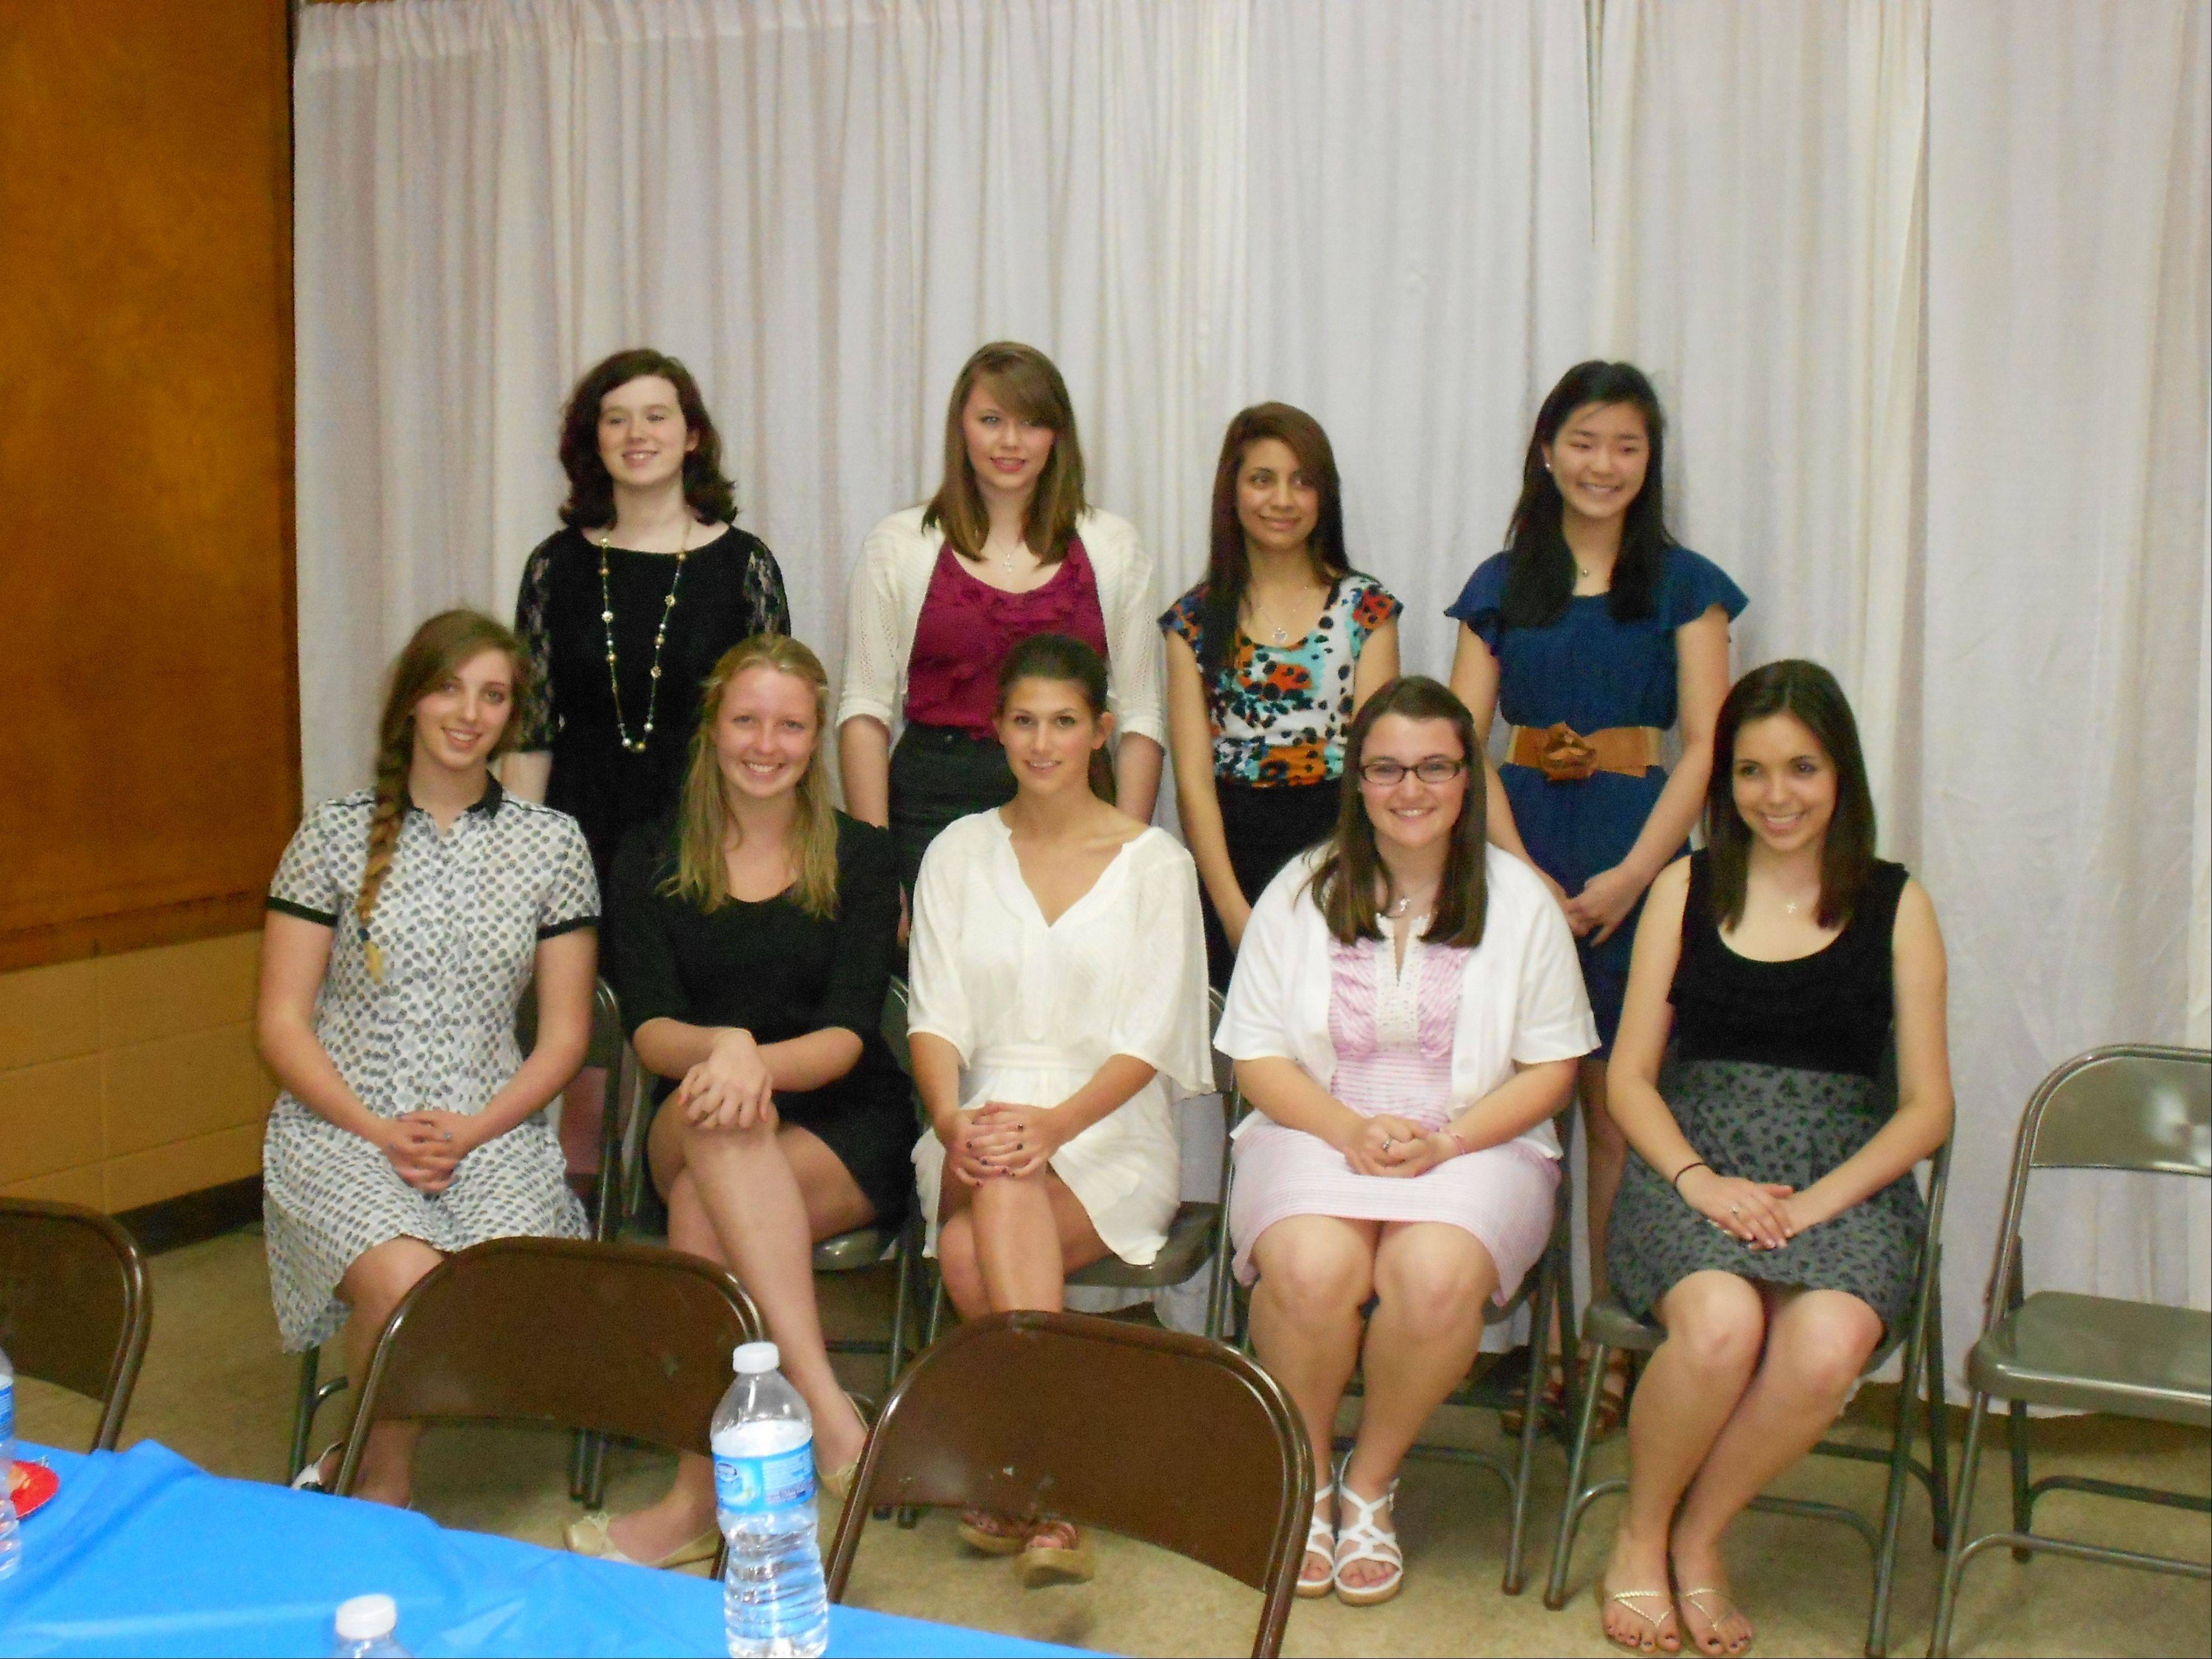 Participants selected to attend the American Legion Girls State program by American Legion Auxiliary-McKinlock Unit 264, Gurnee Unit 771 and Homer Dahringer 281, were, front row: Nina Demet, Emma Eichelman, Claire Dumelle, Kathrine Petersen and Crystal Clanton; back row: Caitlin Purdome, Andrea Potonick, Mariam Echevarria and Emily Jensen.